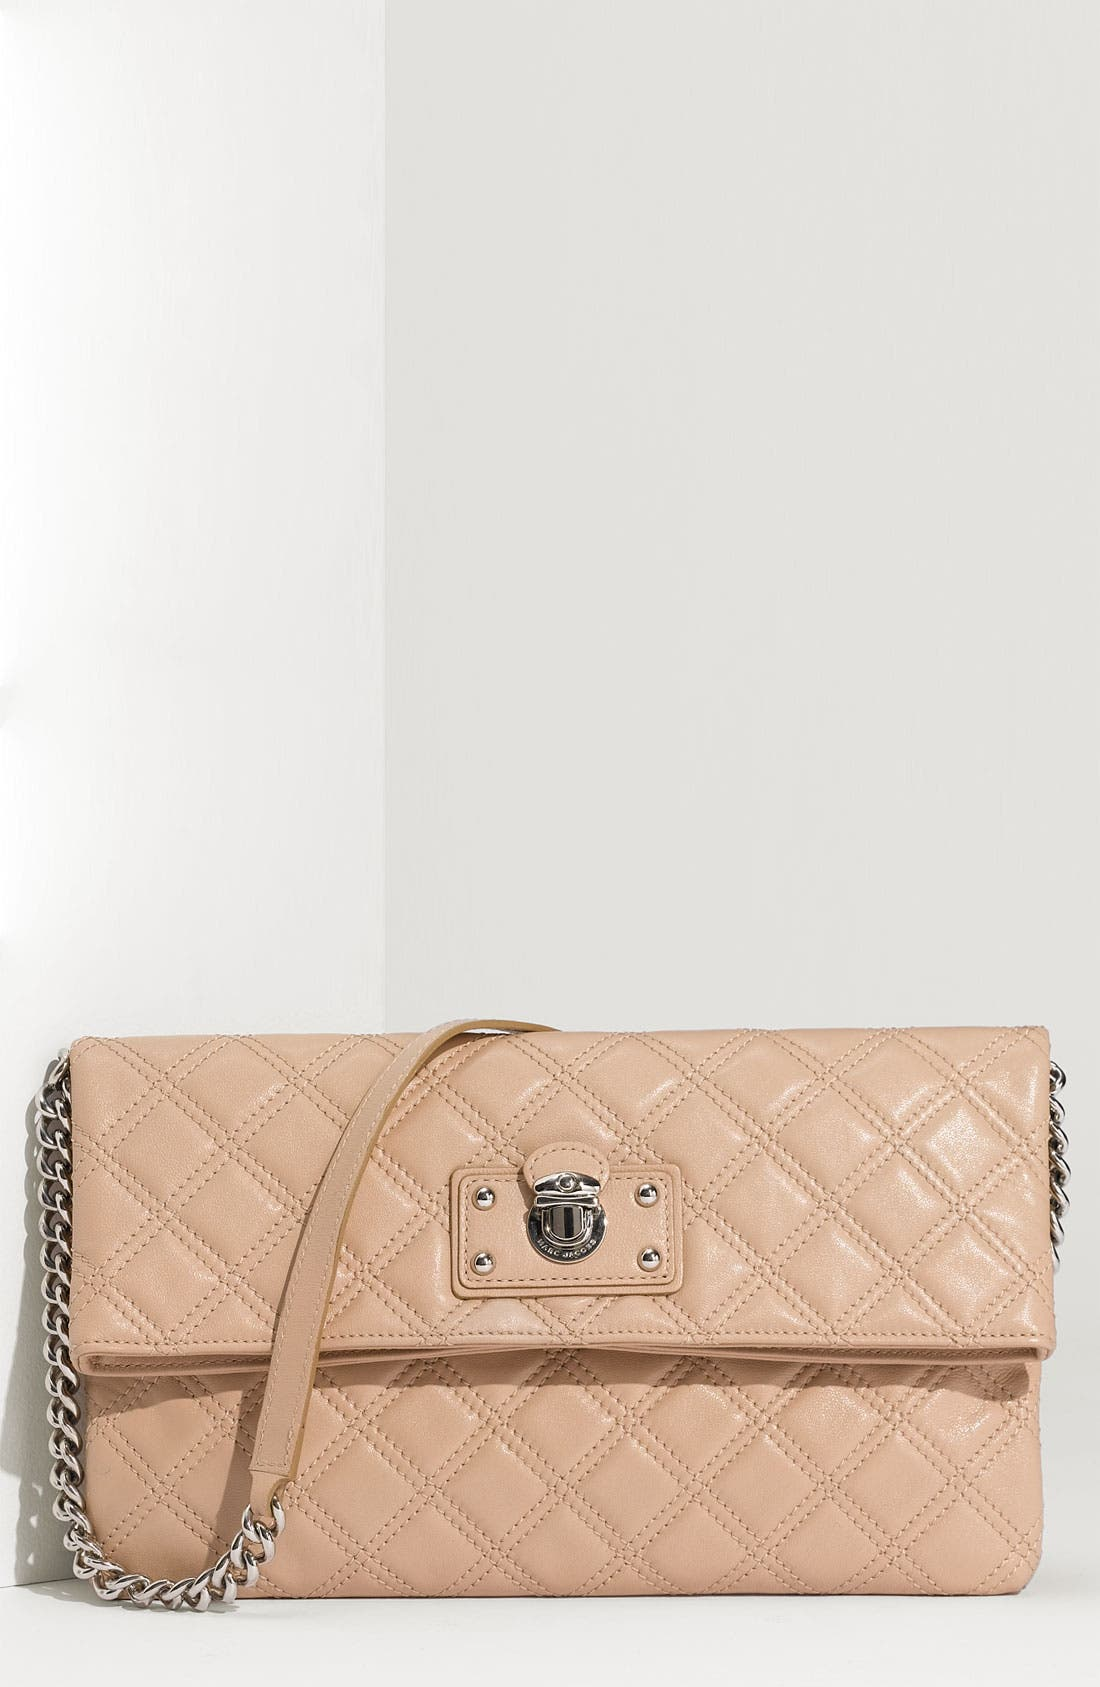 Main Image - MARC JACOBS 'Quilting Sandy' Lambskin Leather Clutch